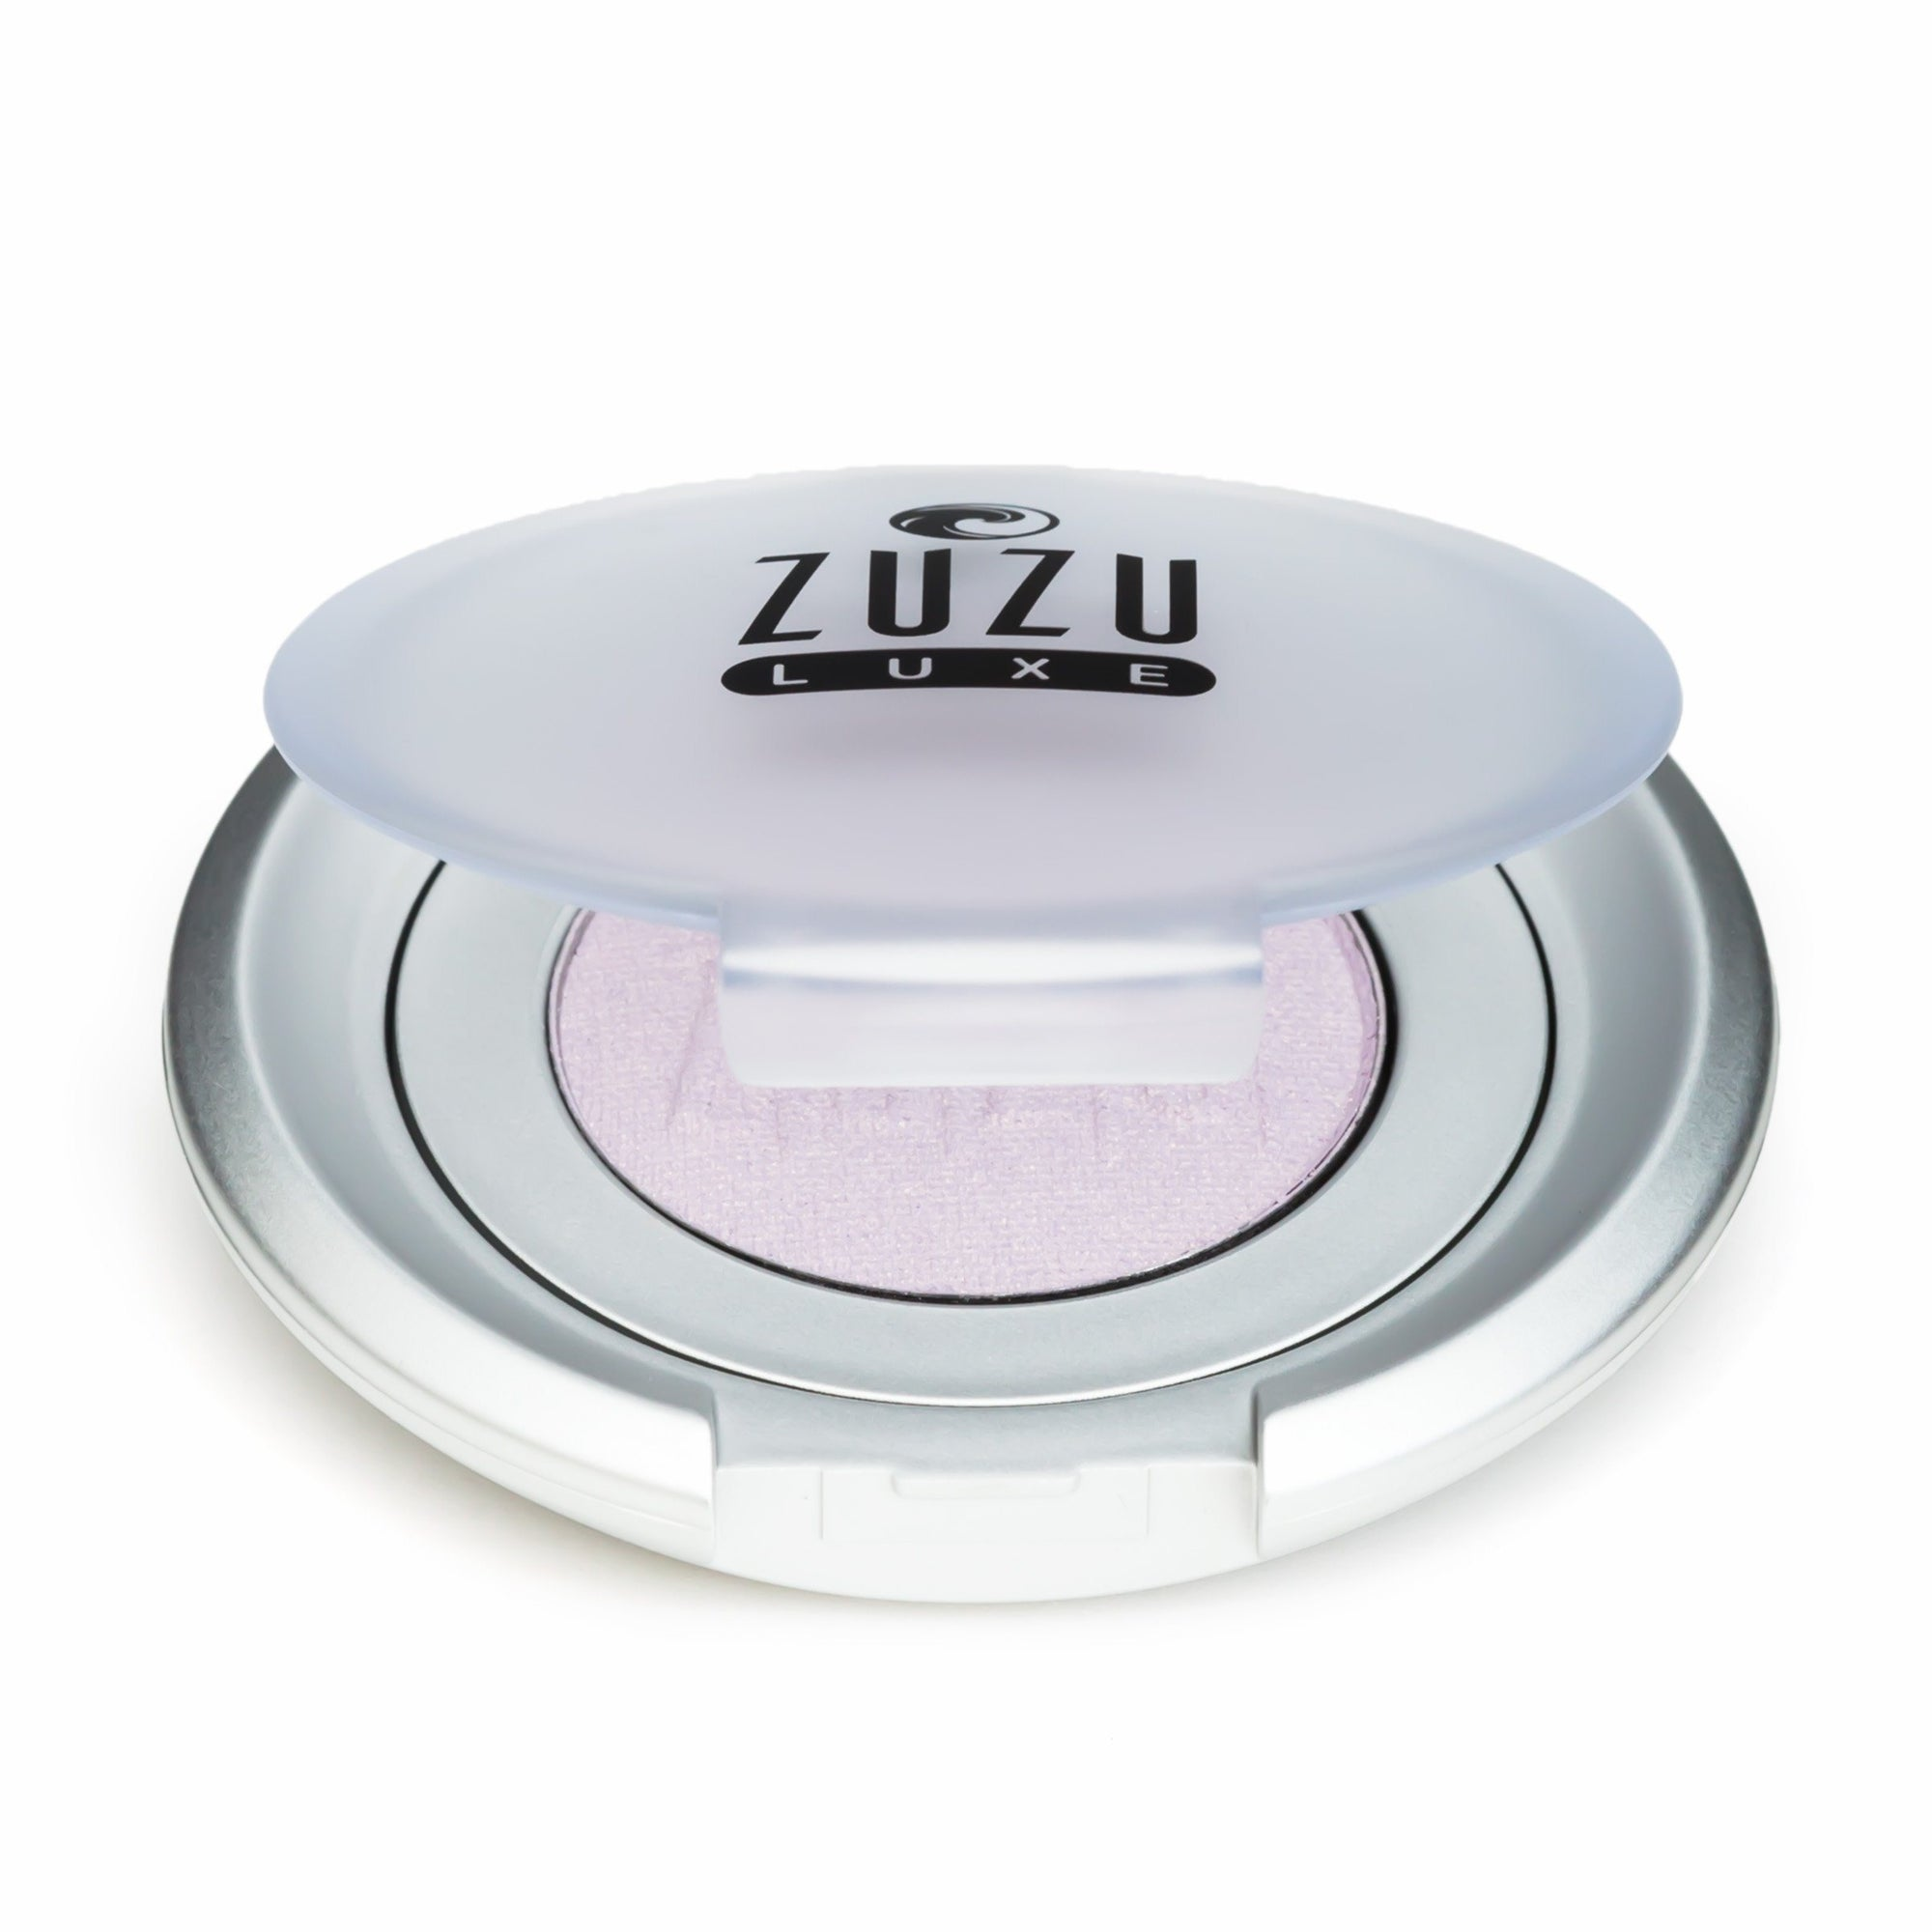 Beauty & Skin Care - Zuzu Luxe - Vegan Eyeshadow, Angel